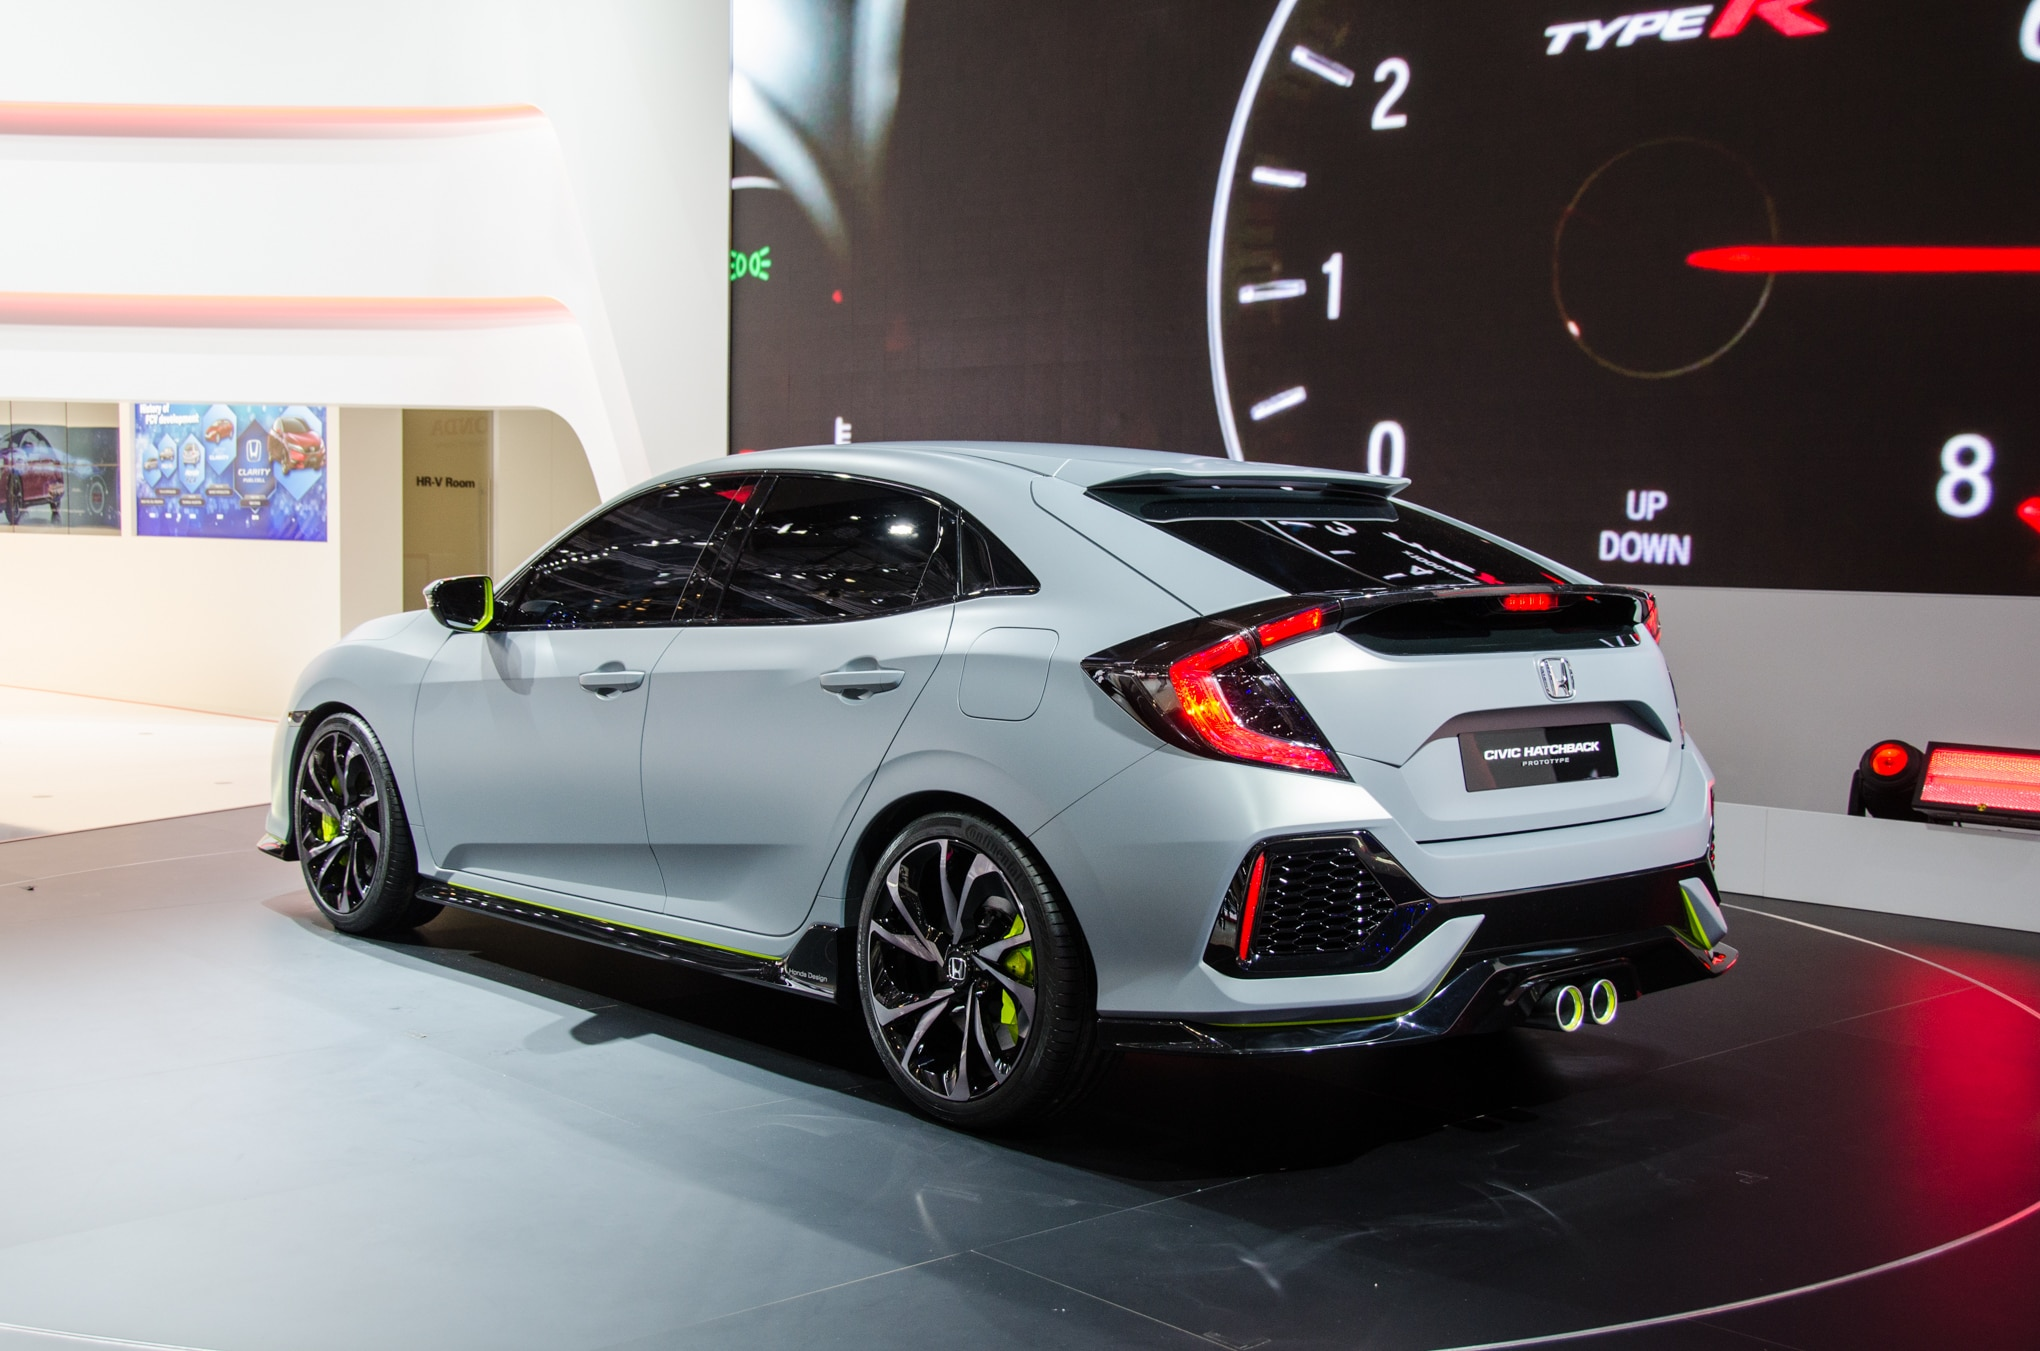 Civic Hatch: Honda Civic Hatchback Prototype Combines Sportiness And